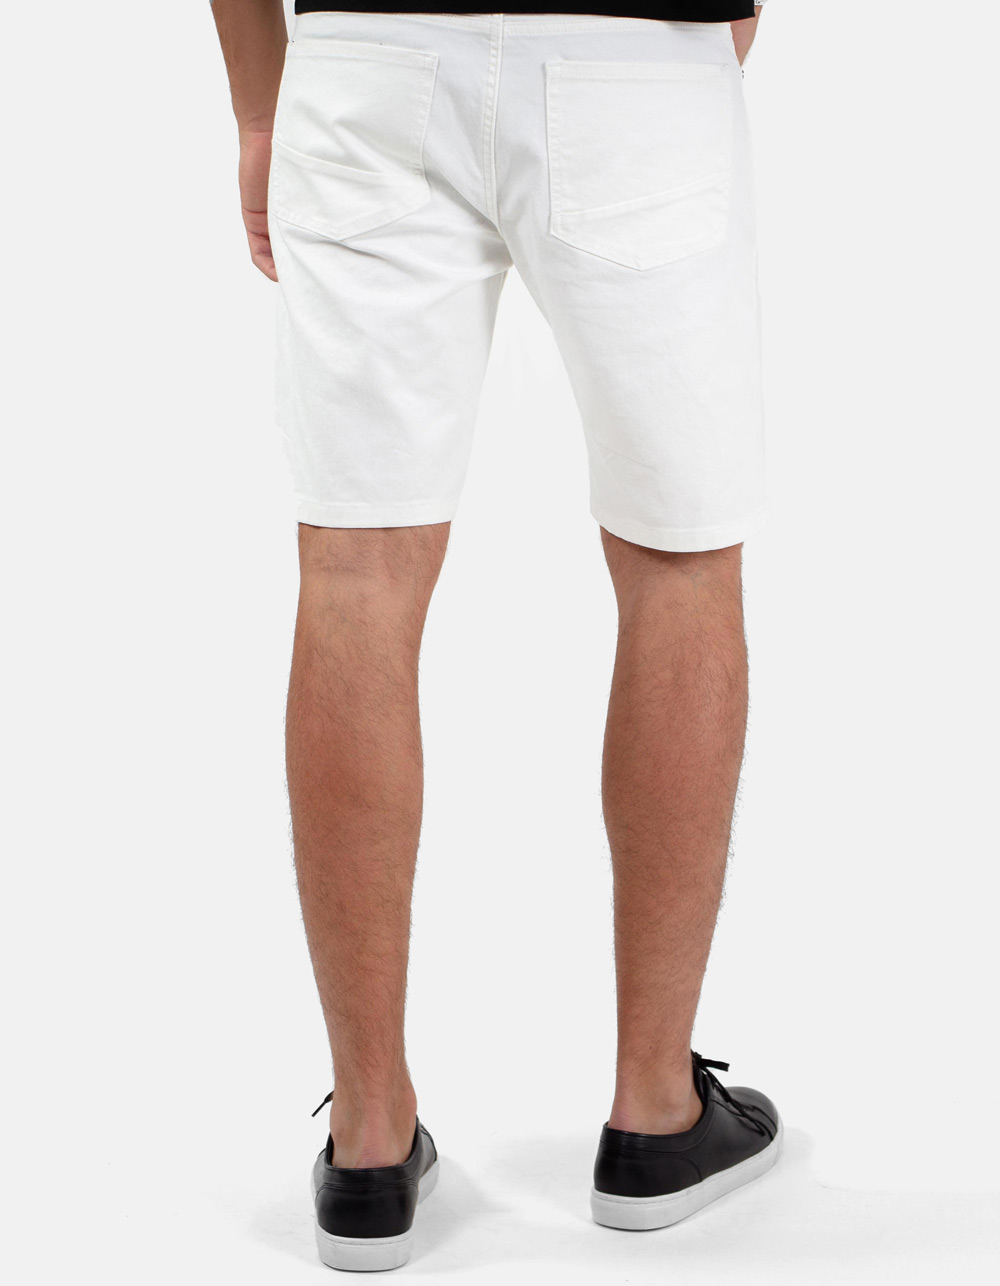 White 5 pocket denim bermuda - Backside